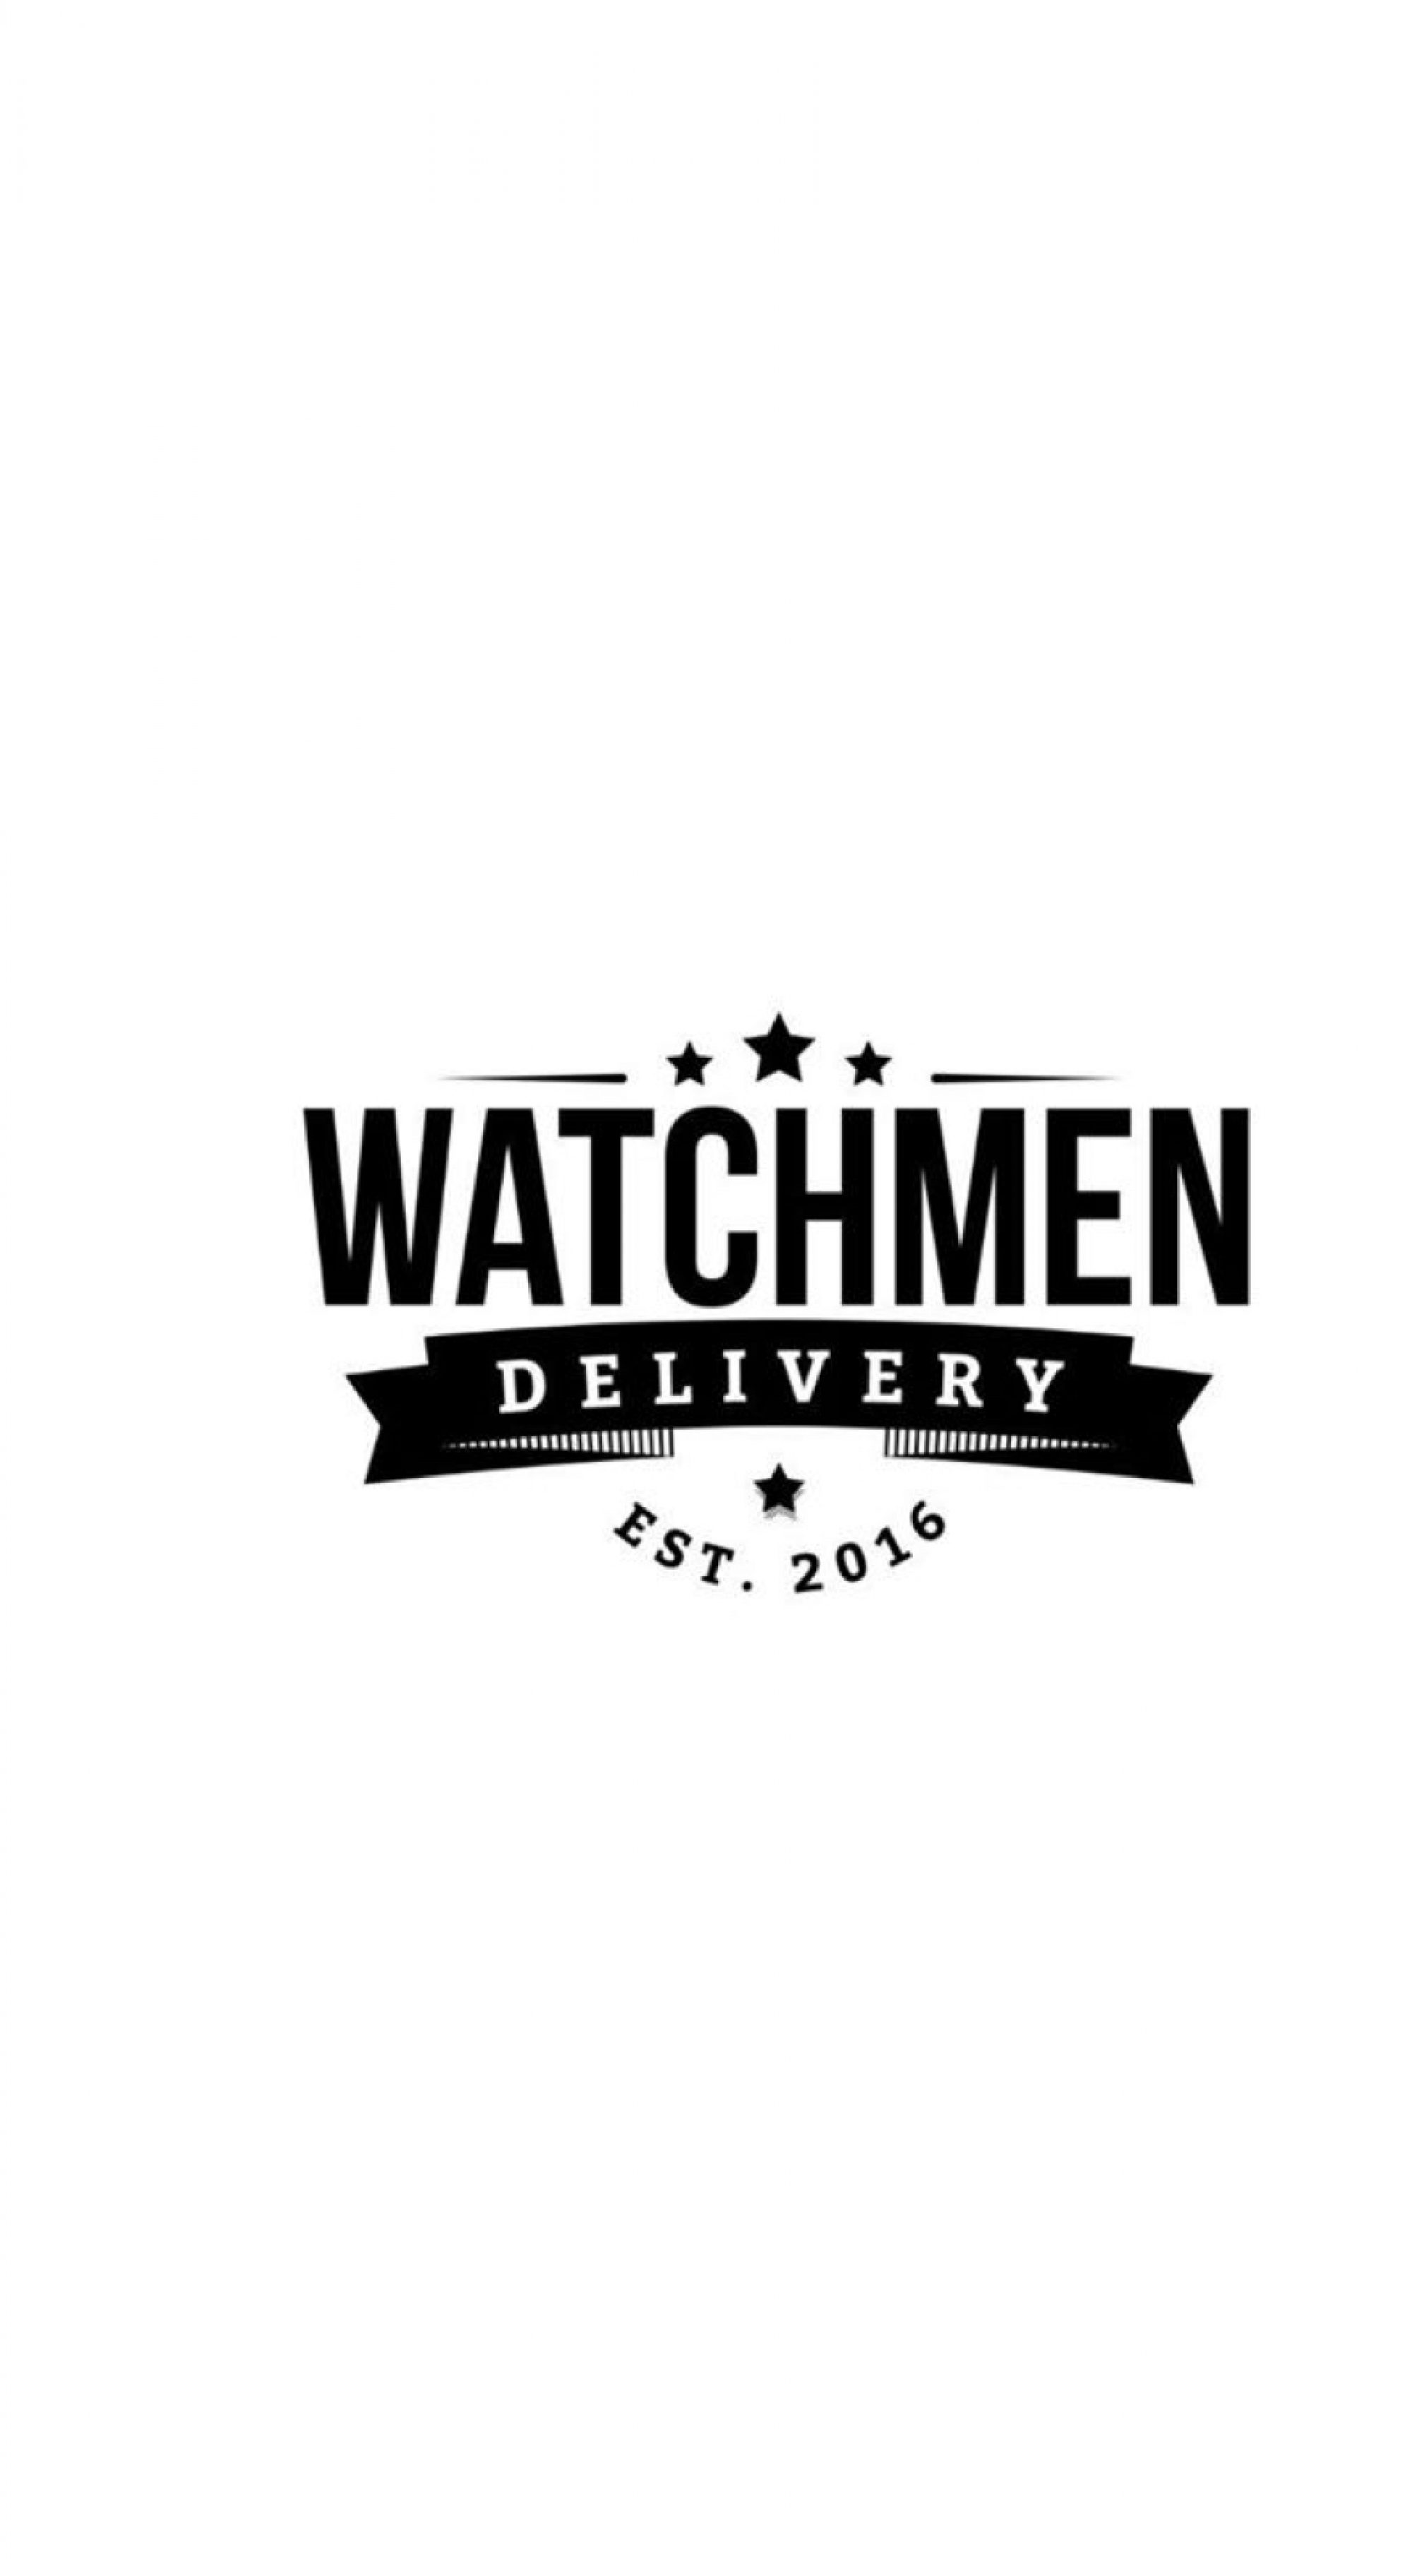 watchmendelivery